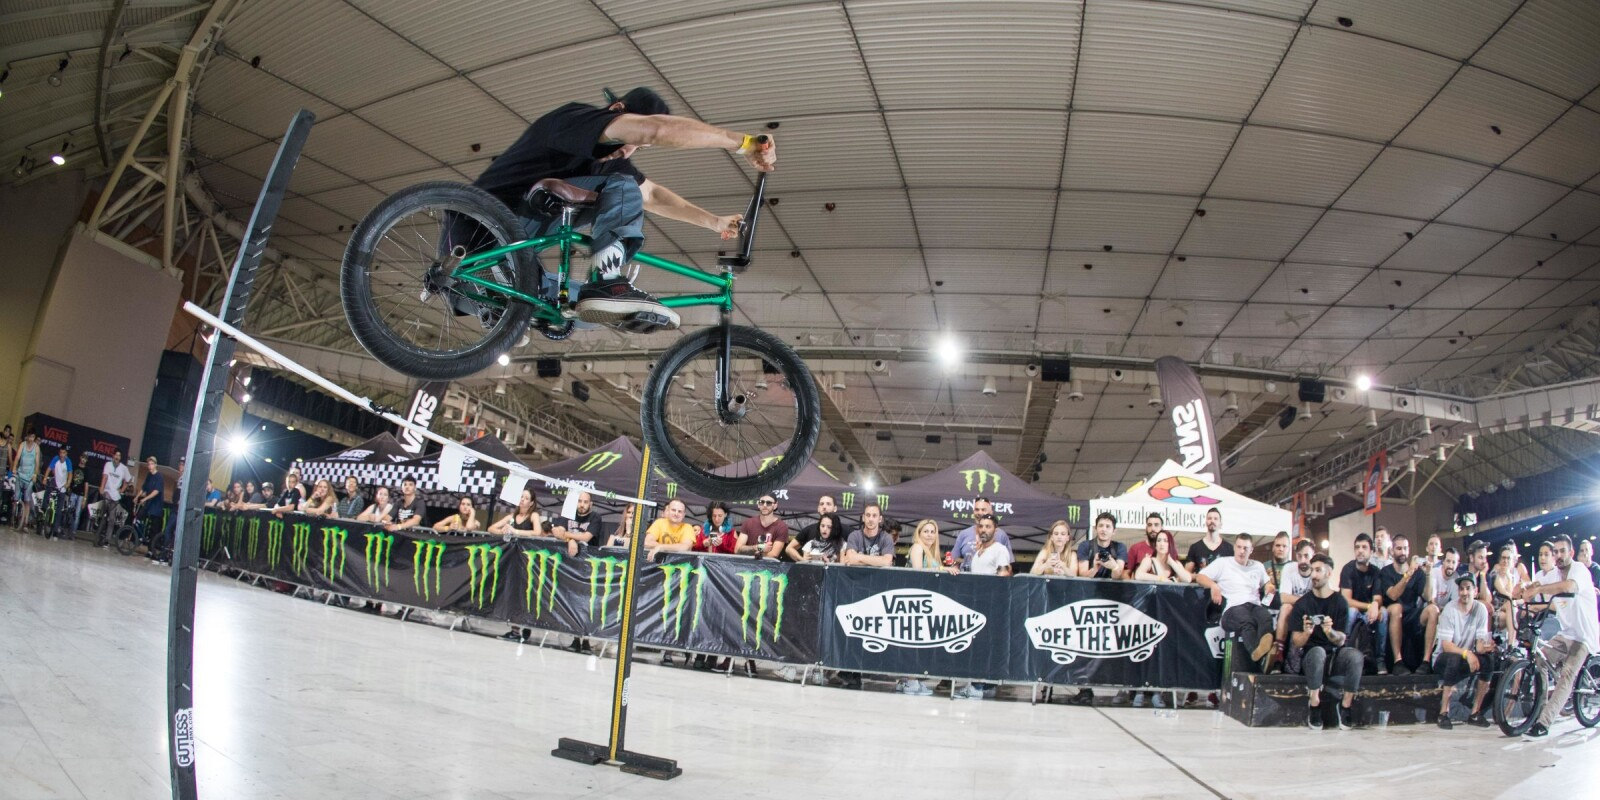 Photos from  Athens Tattoo Convention BMX Contest fuelled by Monster Energy